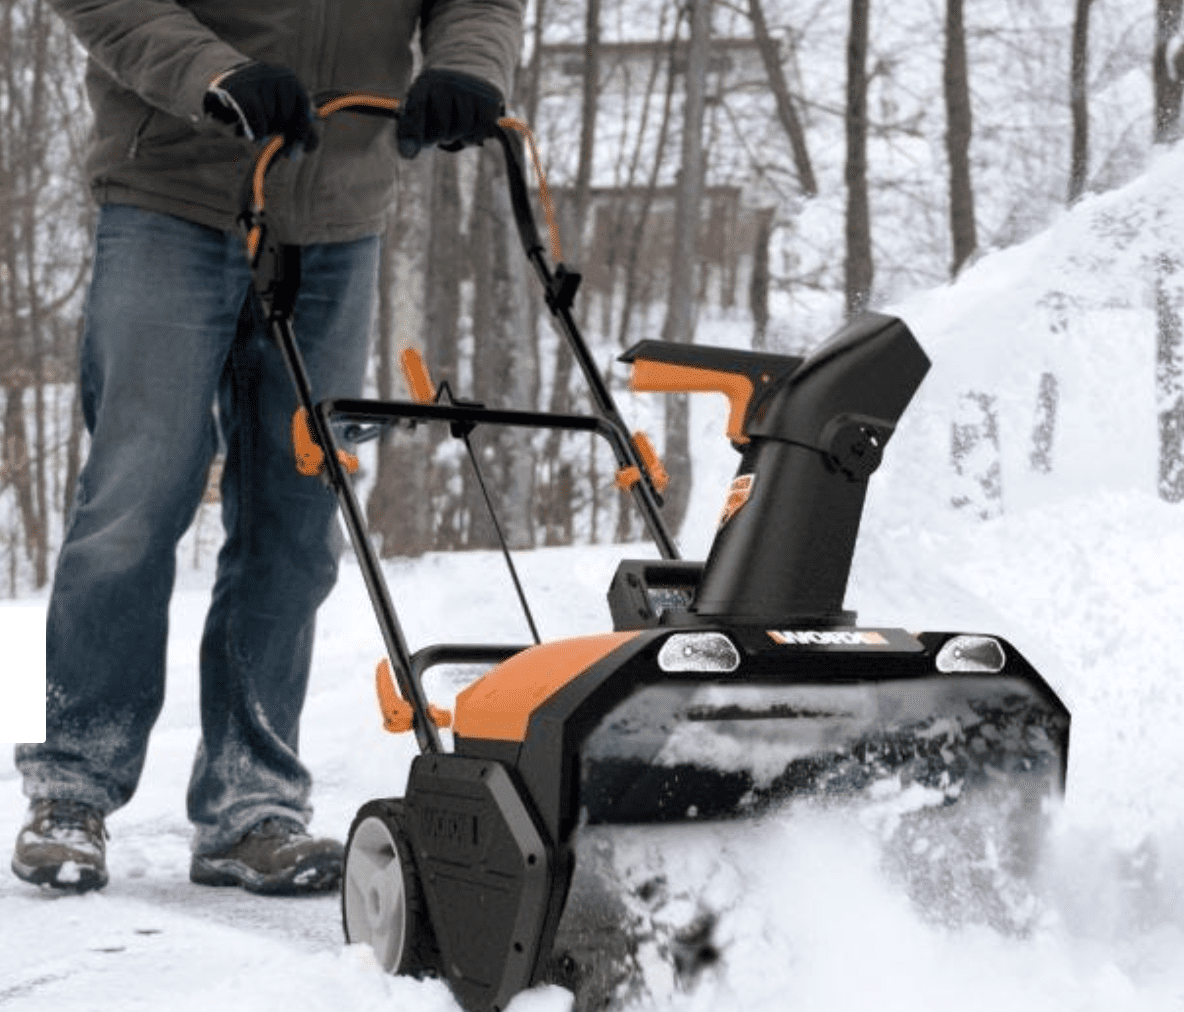 person using Worx cordless snow blower to remove snow